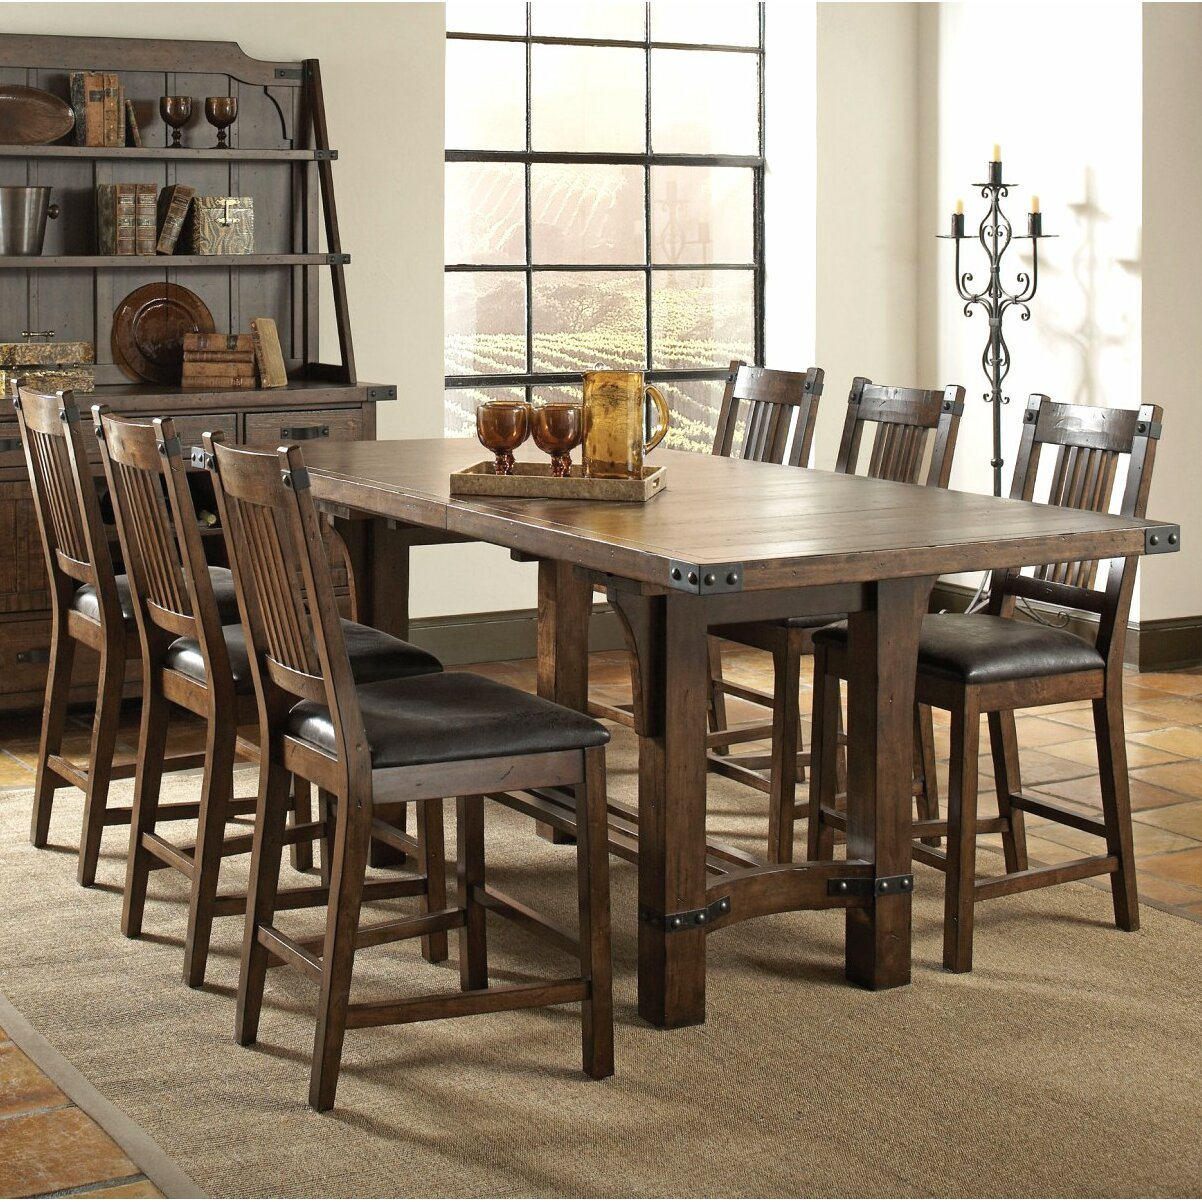 Infini Furnishings 7 Piece Counter Height Dining Set  : 7 Piece Counter Height Dining Set INF105708 9JB from www.wayfair.com size 1202 x 1202 jpeg 477kB